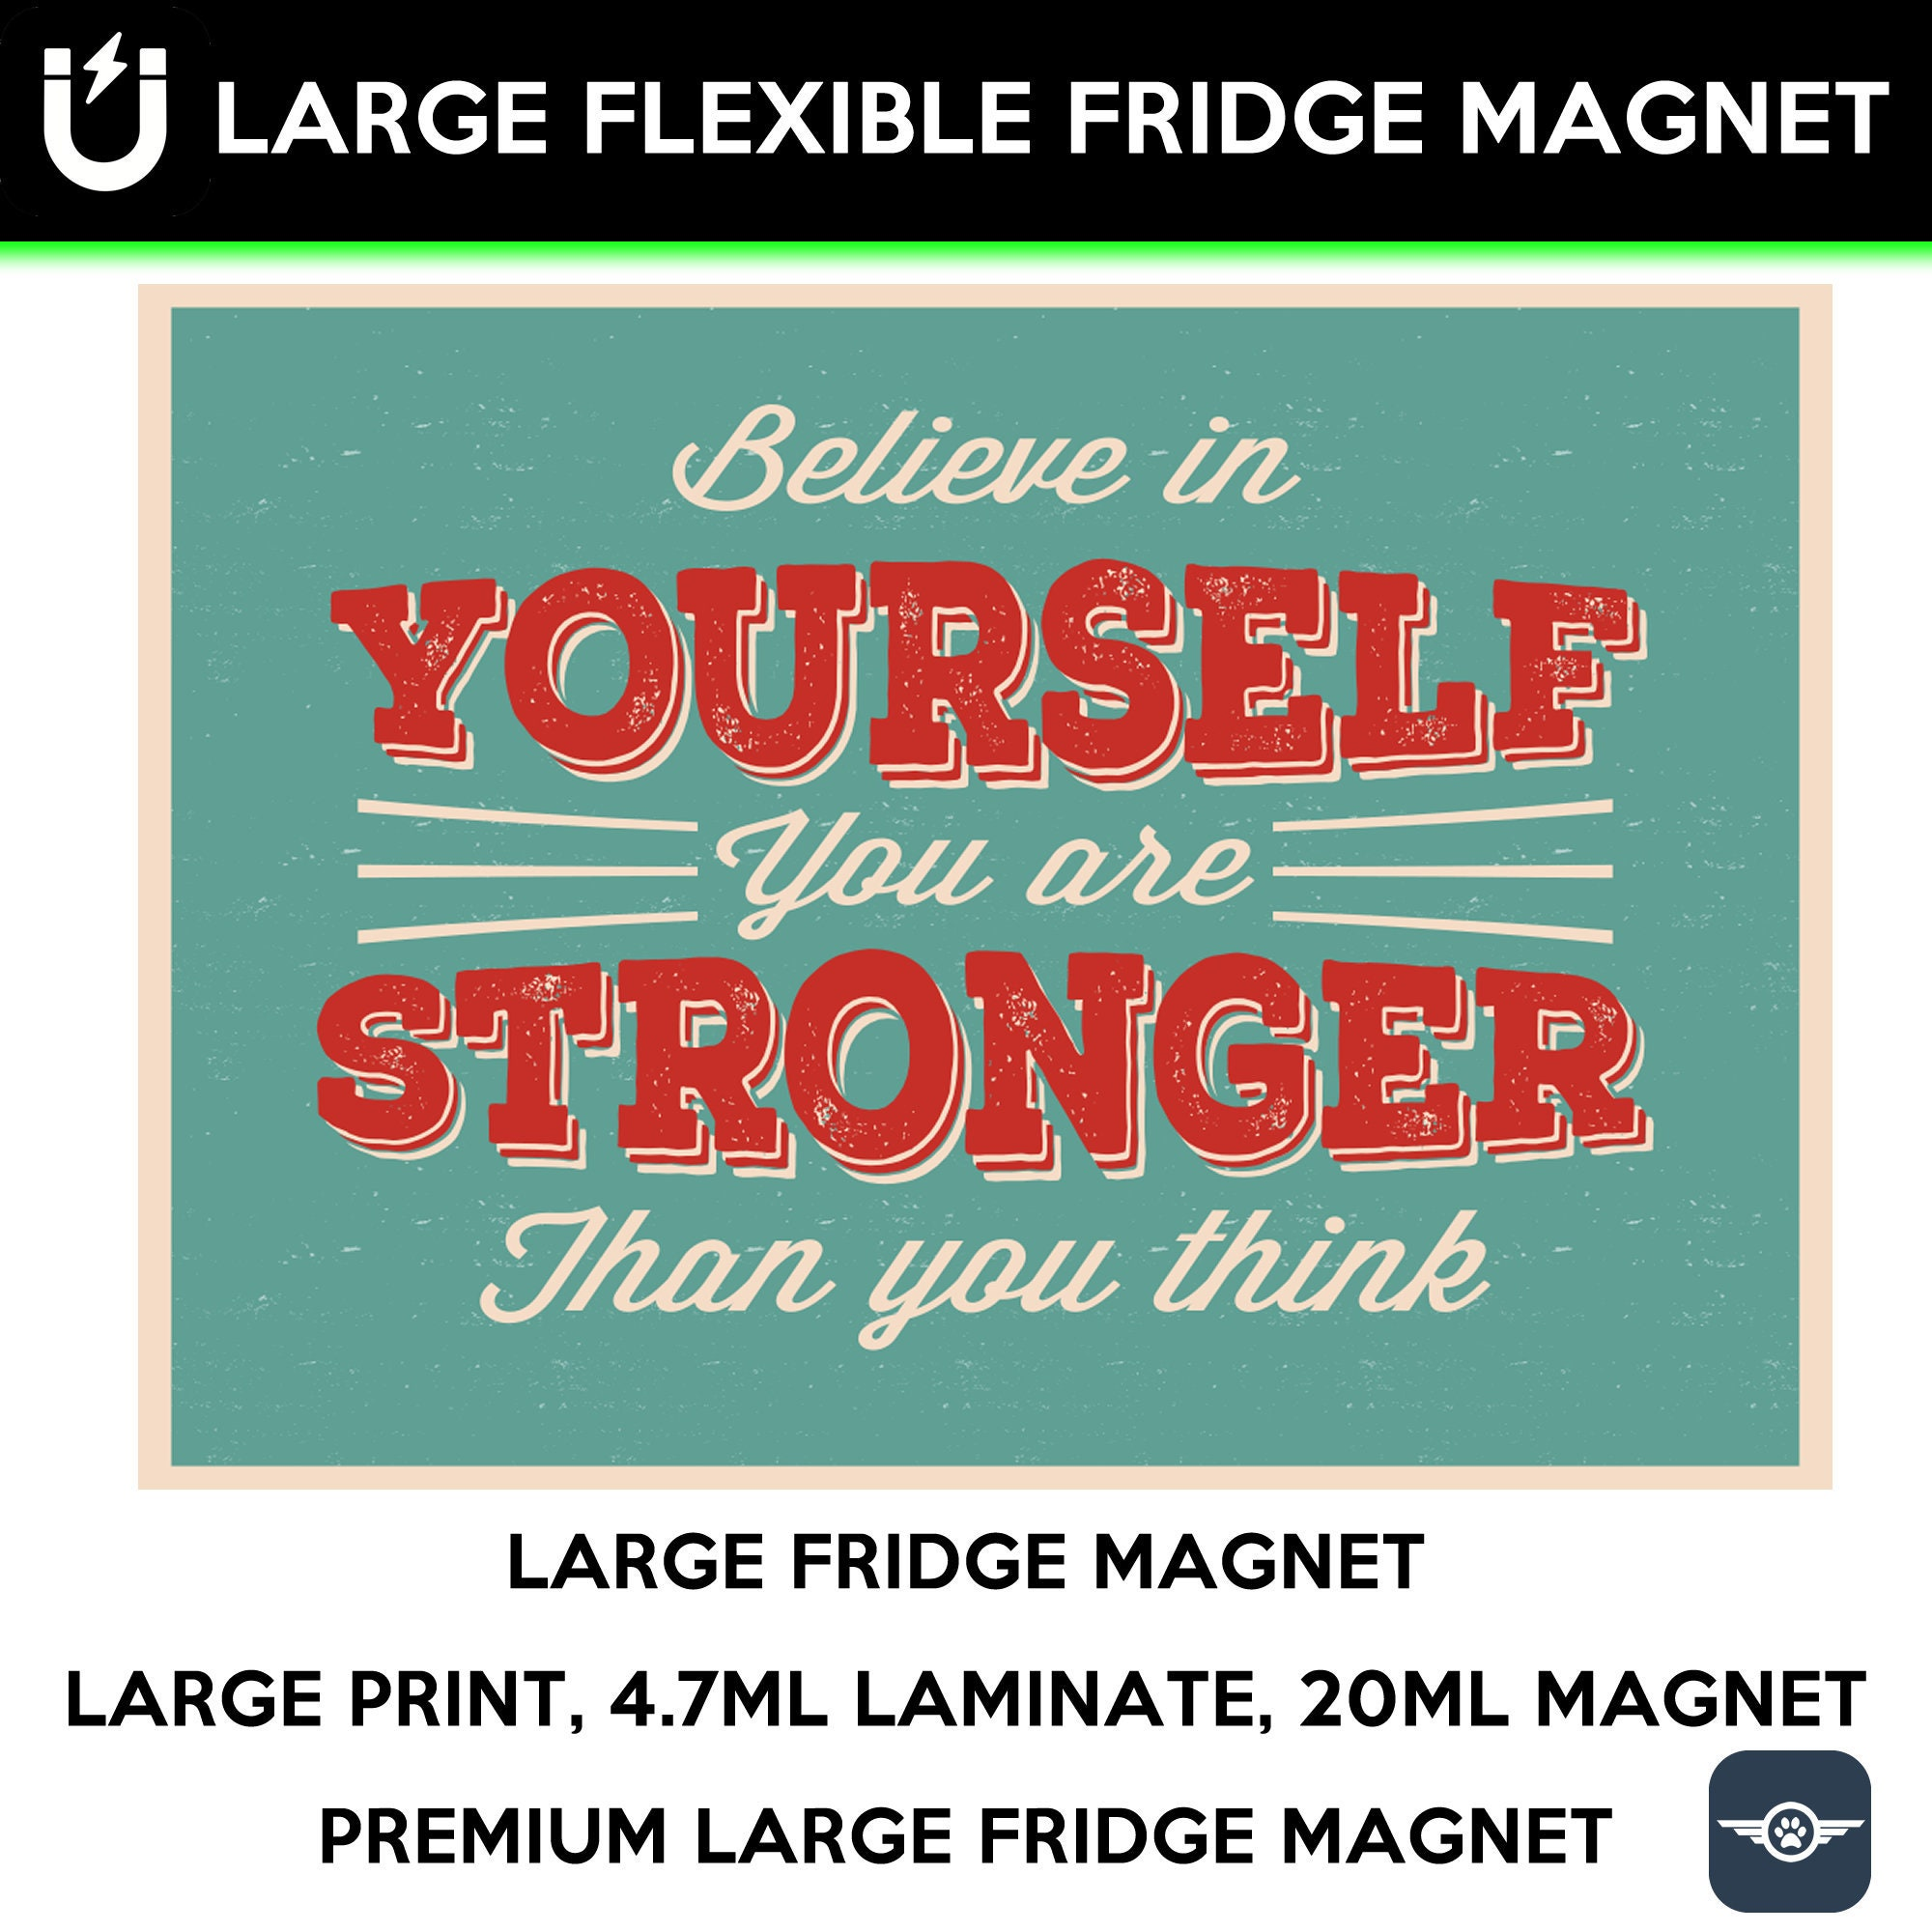 Believe in yourself you are stronger than you think inspirational fridge magnet 6.5 inch x 9 inch motivational premium large magnet